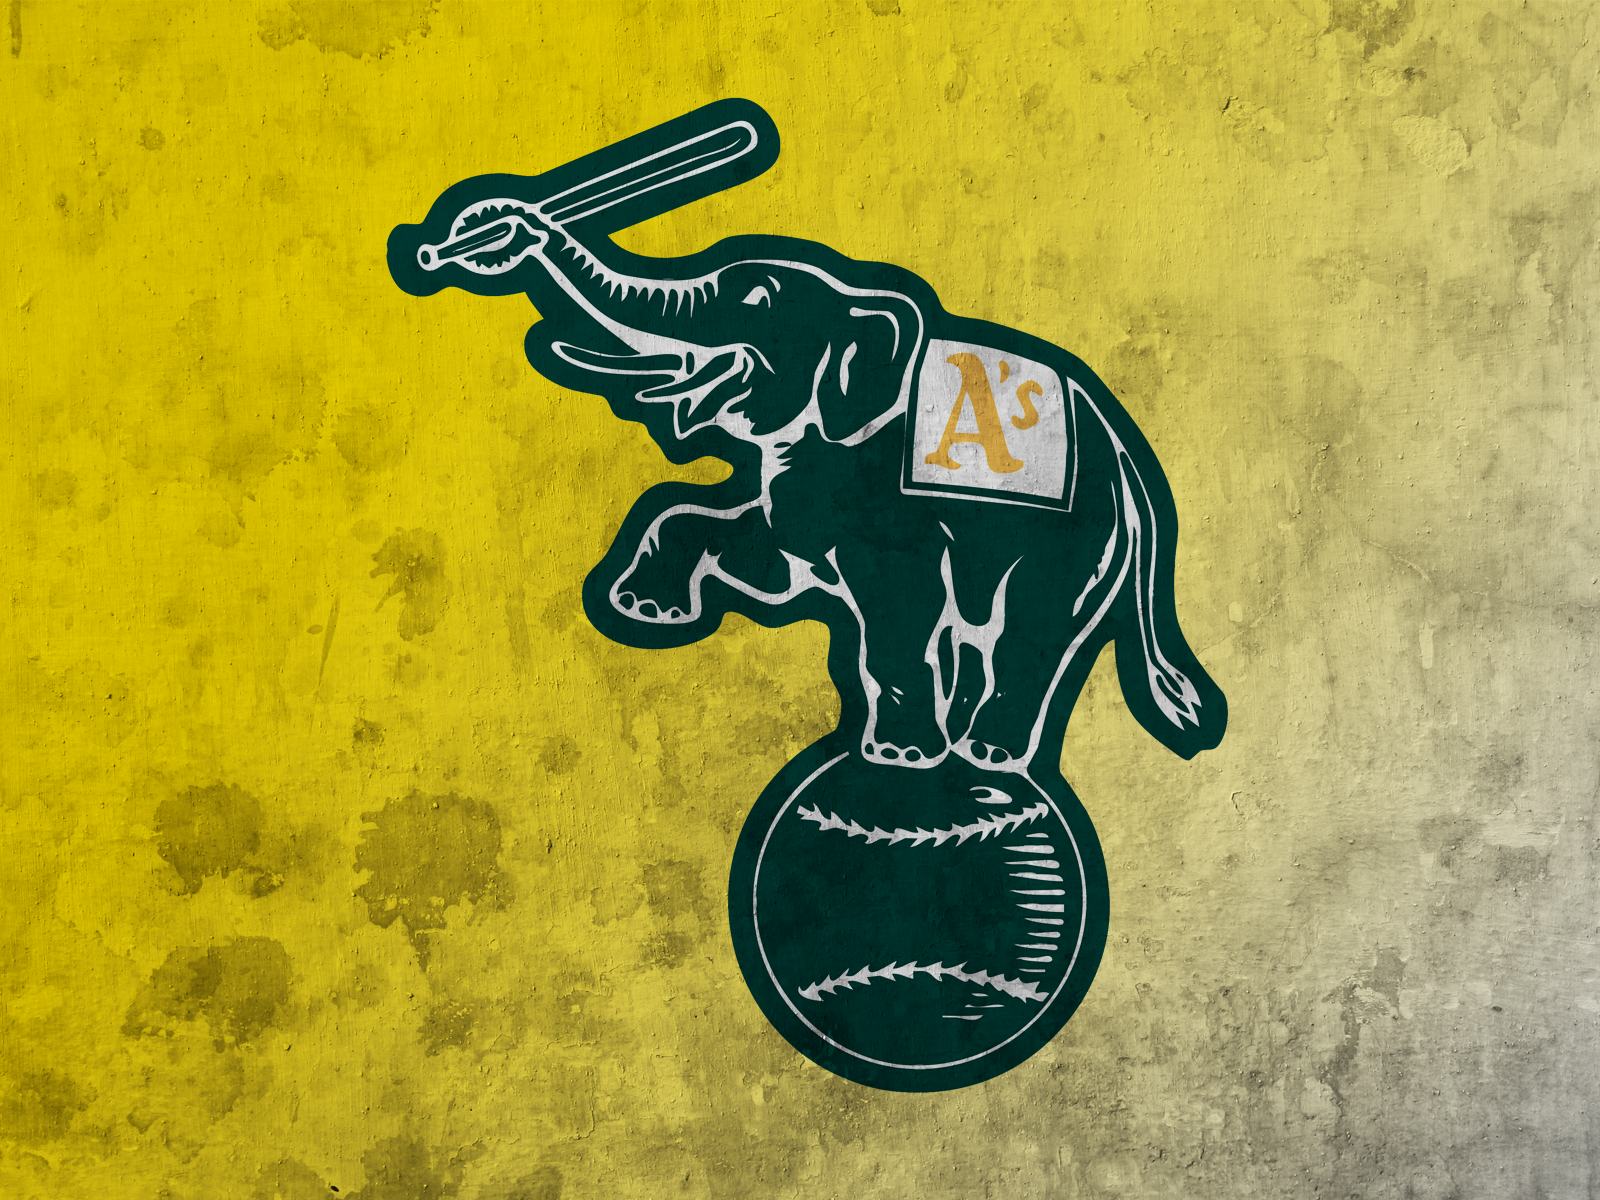 Oakland Athletics Wallpaper 10   1920 X 1200 stmednet 1600x1200